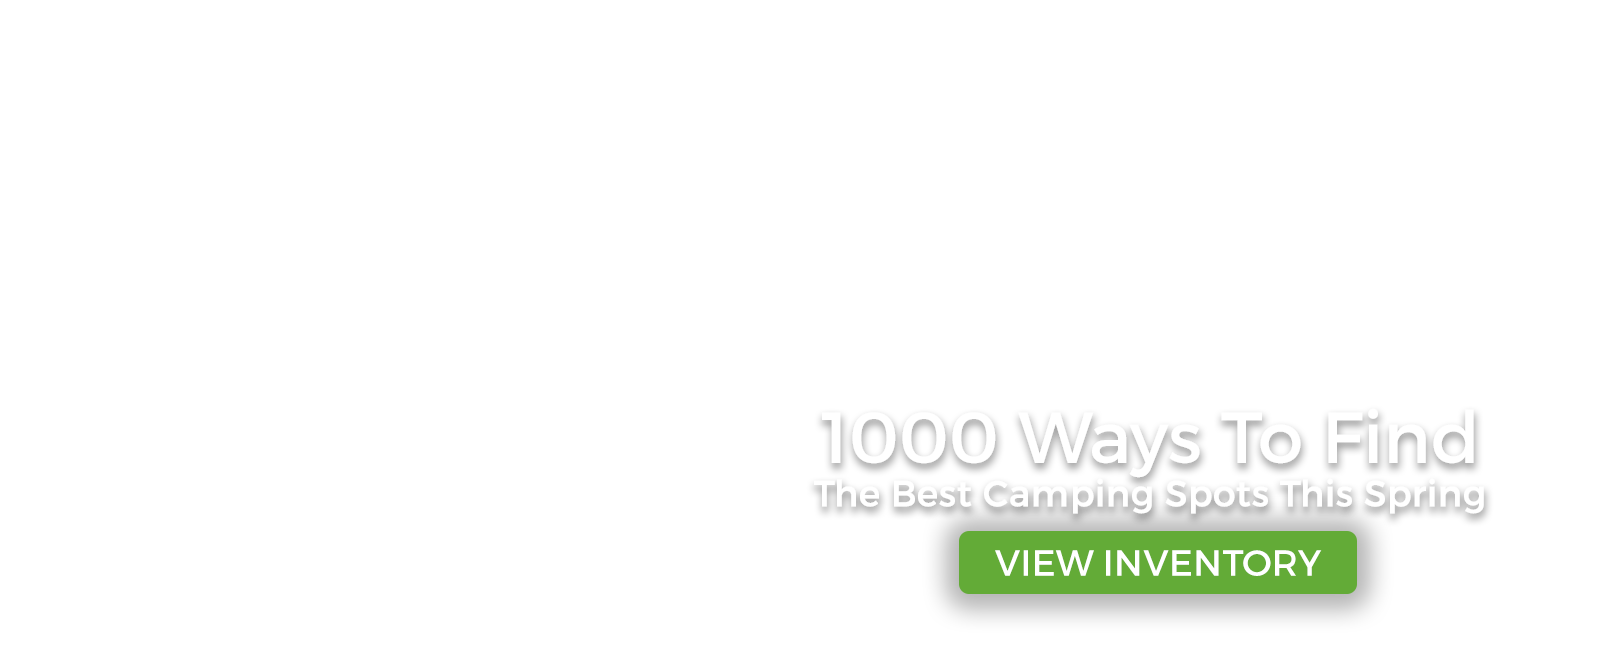 1000 ways to find the best camping spots this spring at Larry H. Miller Used Car Supermarkets